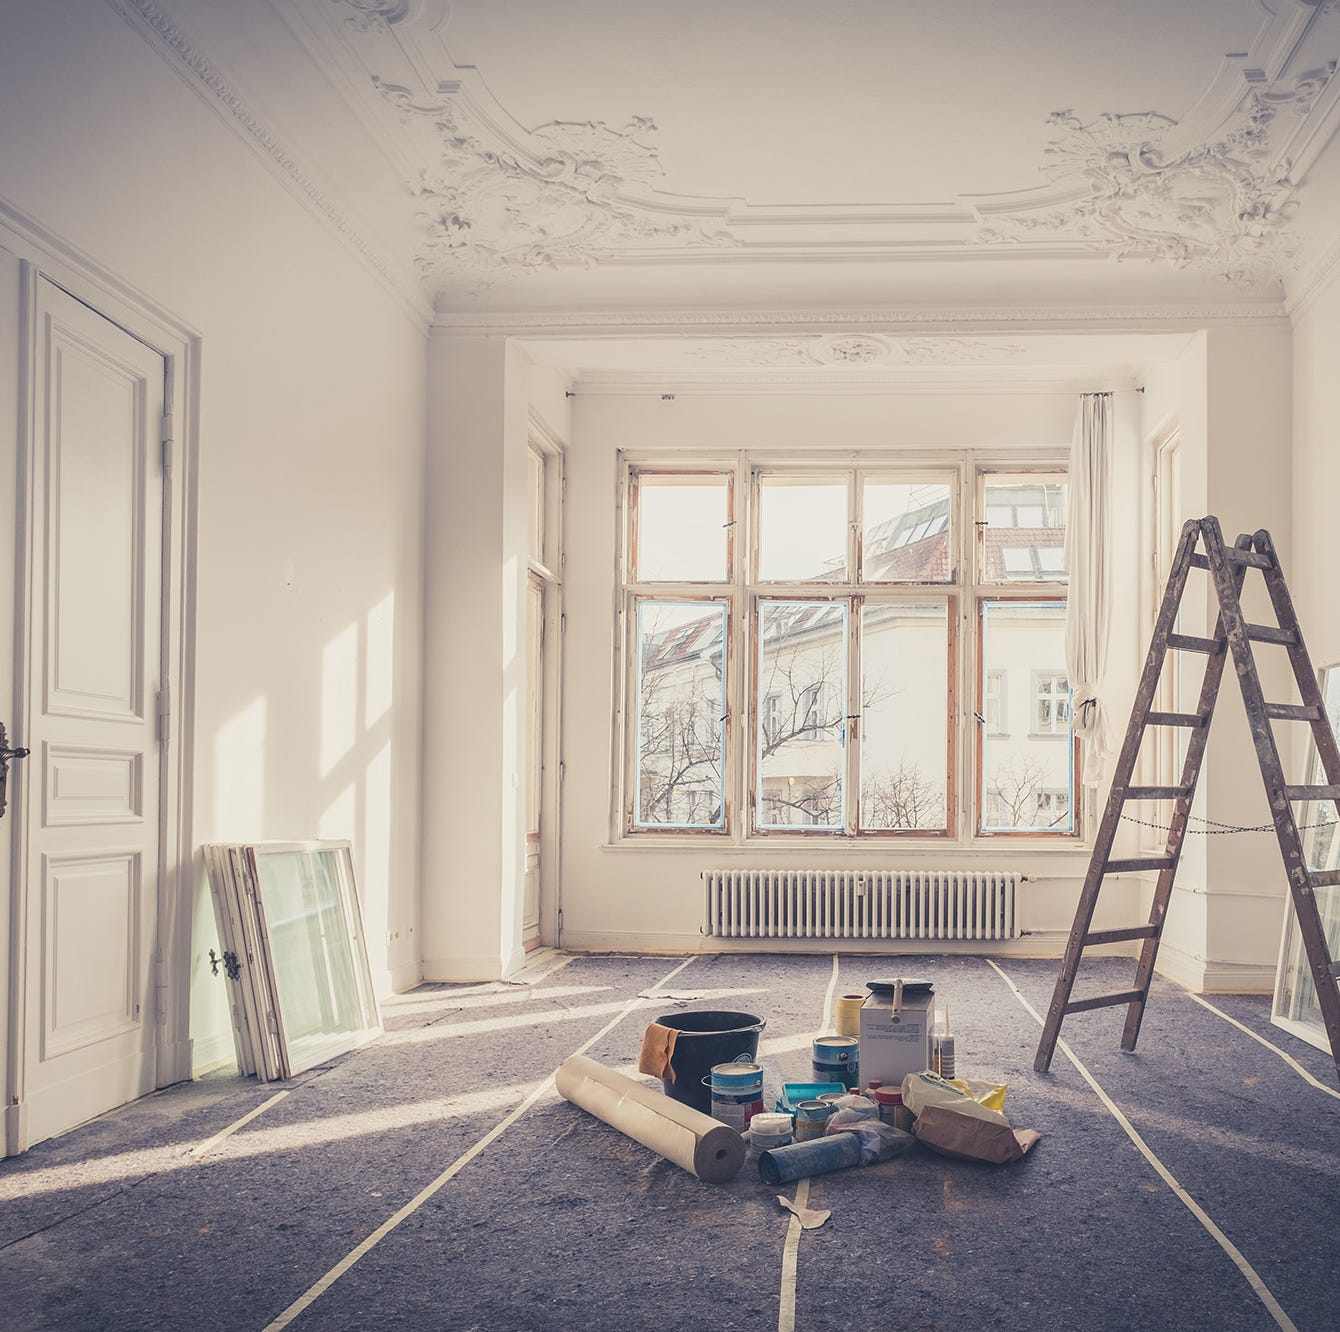 Selling a Home Part II: Should I Renovate Before Listing?